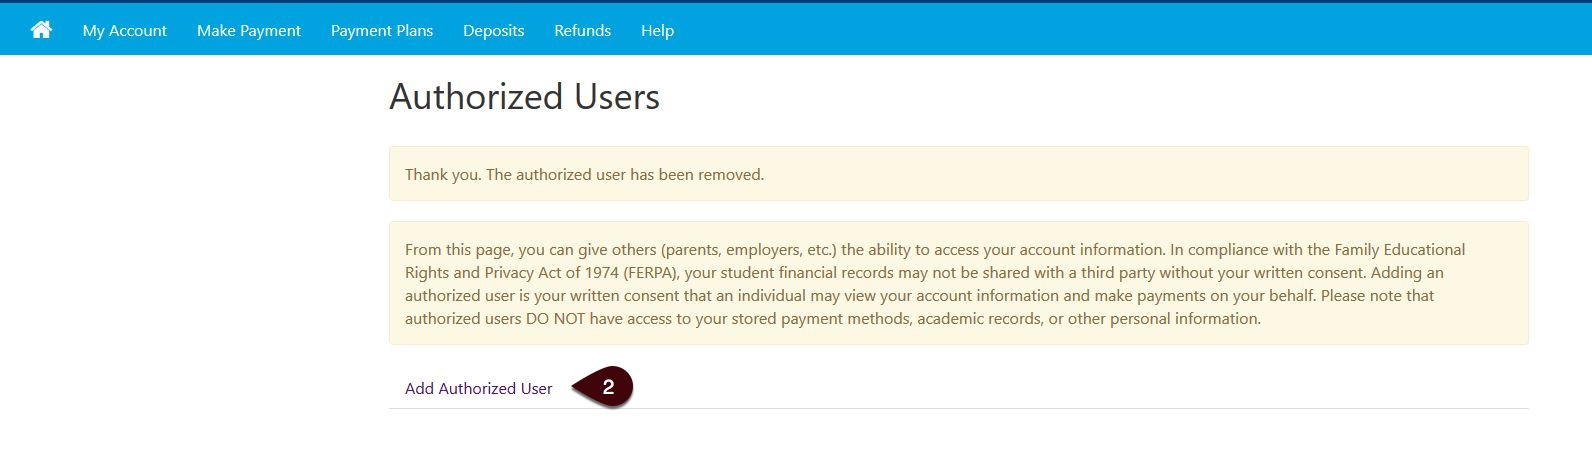 Authorized Users screenshot